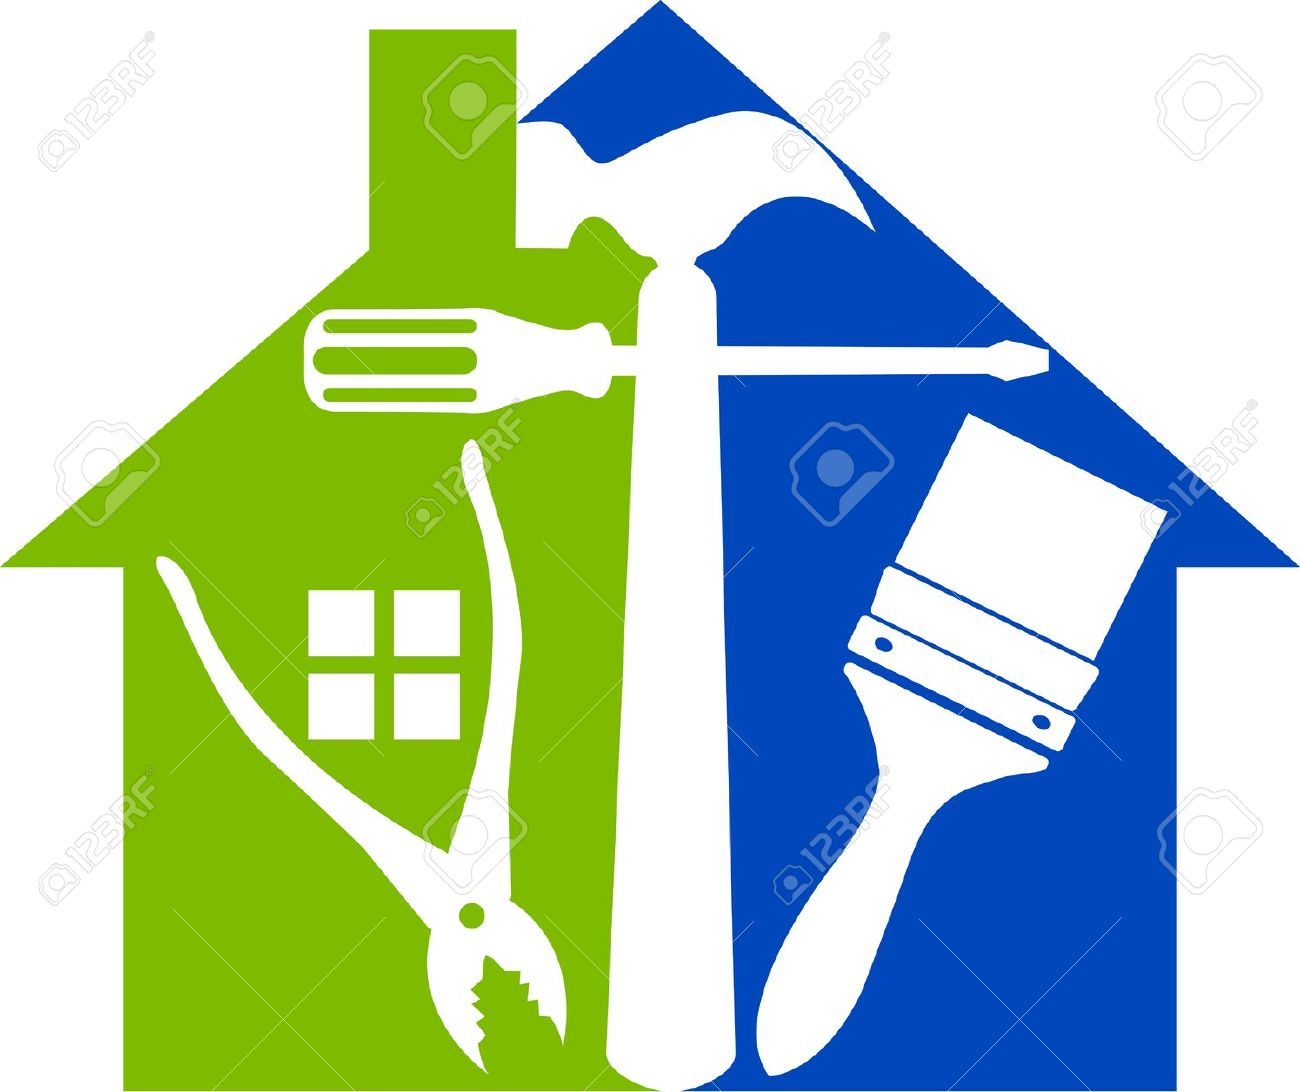 home-improvement-tools-clipart-14.jpg